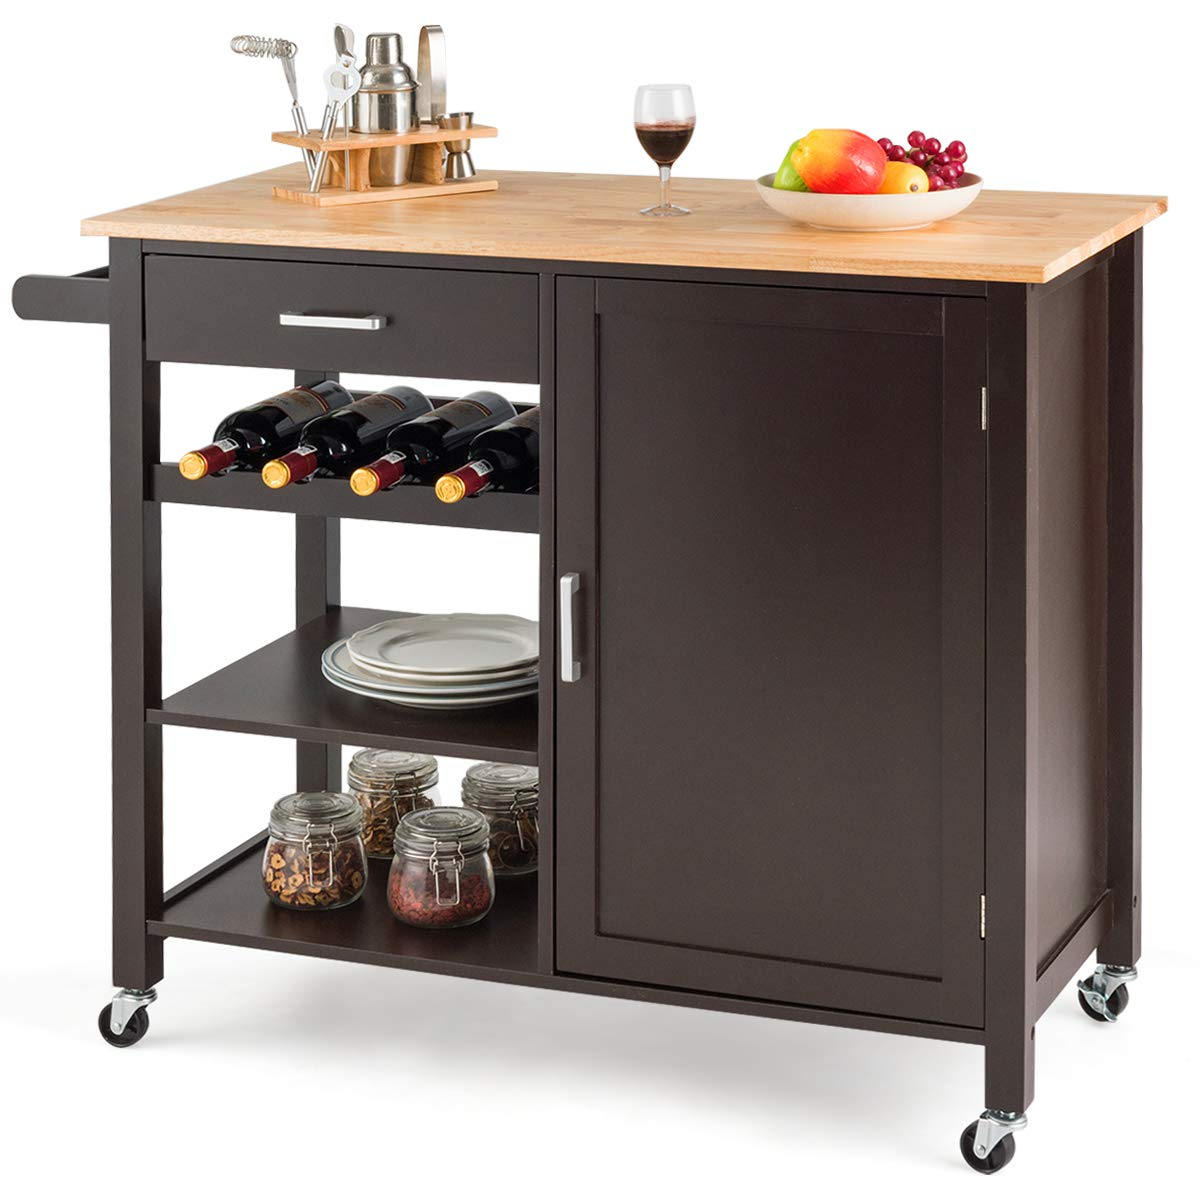 Giantex Kitchen Island Cart Rolling Serving Cart Wood Trolley with Drawer, Storage Cabinet, Wine Bottle Rack, Towel Rack and Lockable Wheels Brown